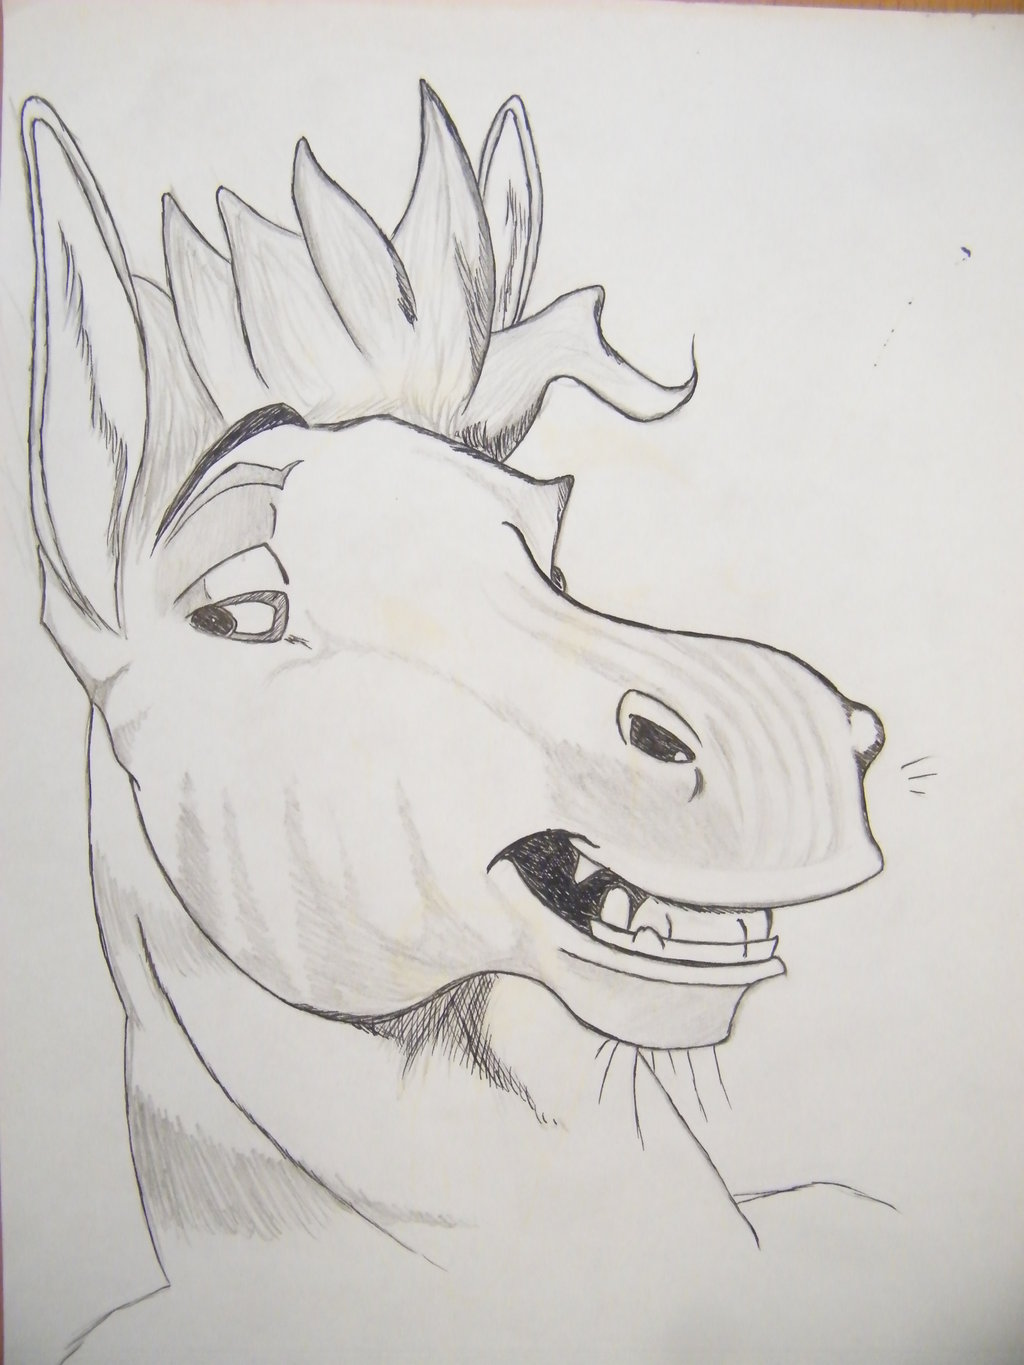 As a HORSE... (I)